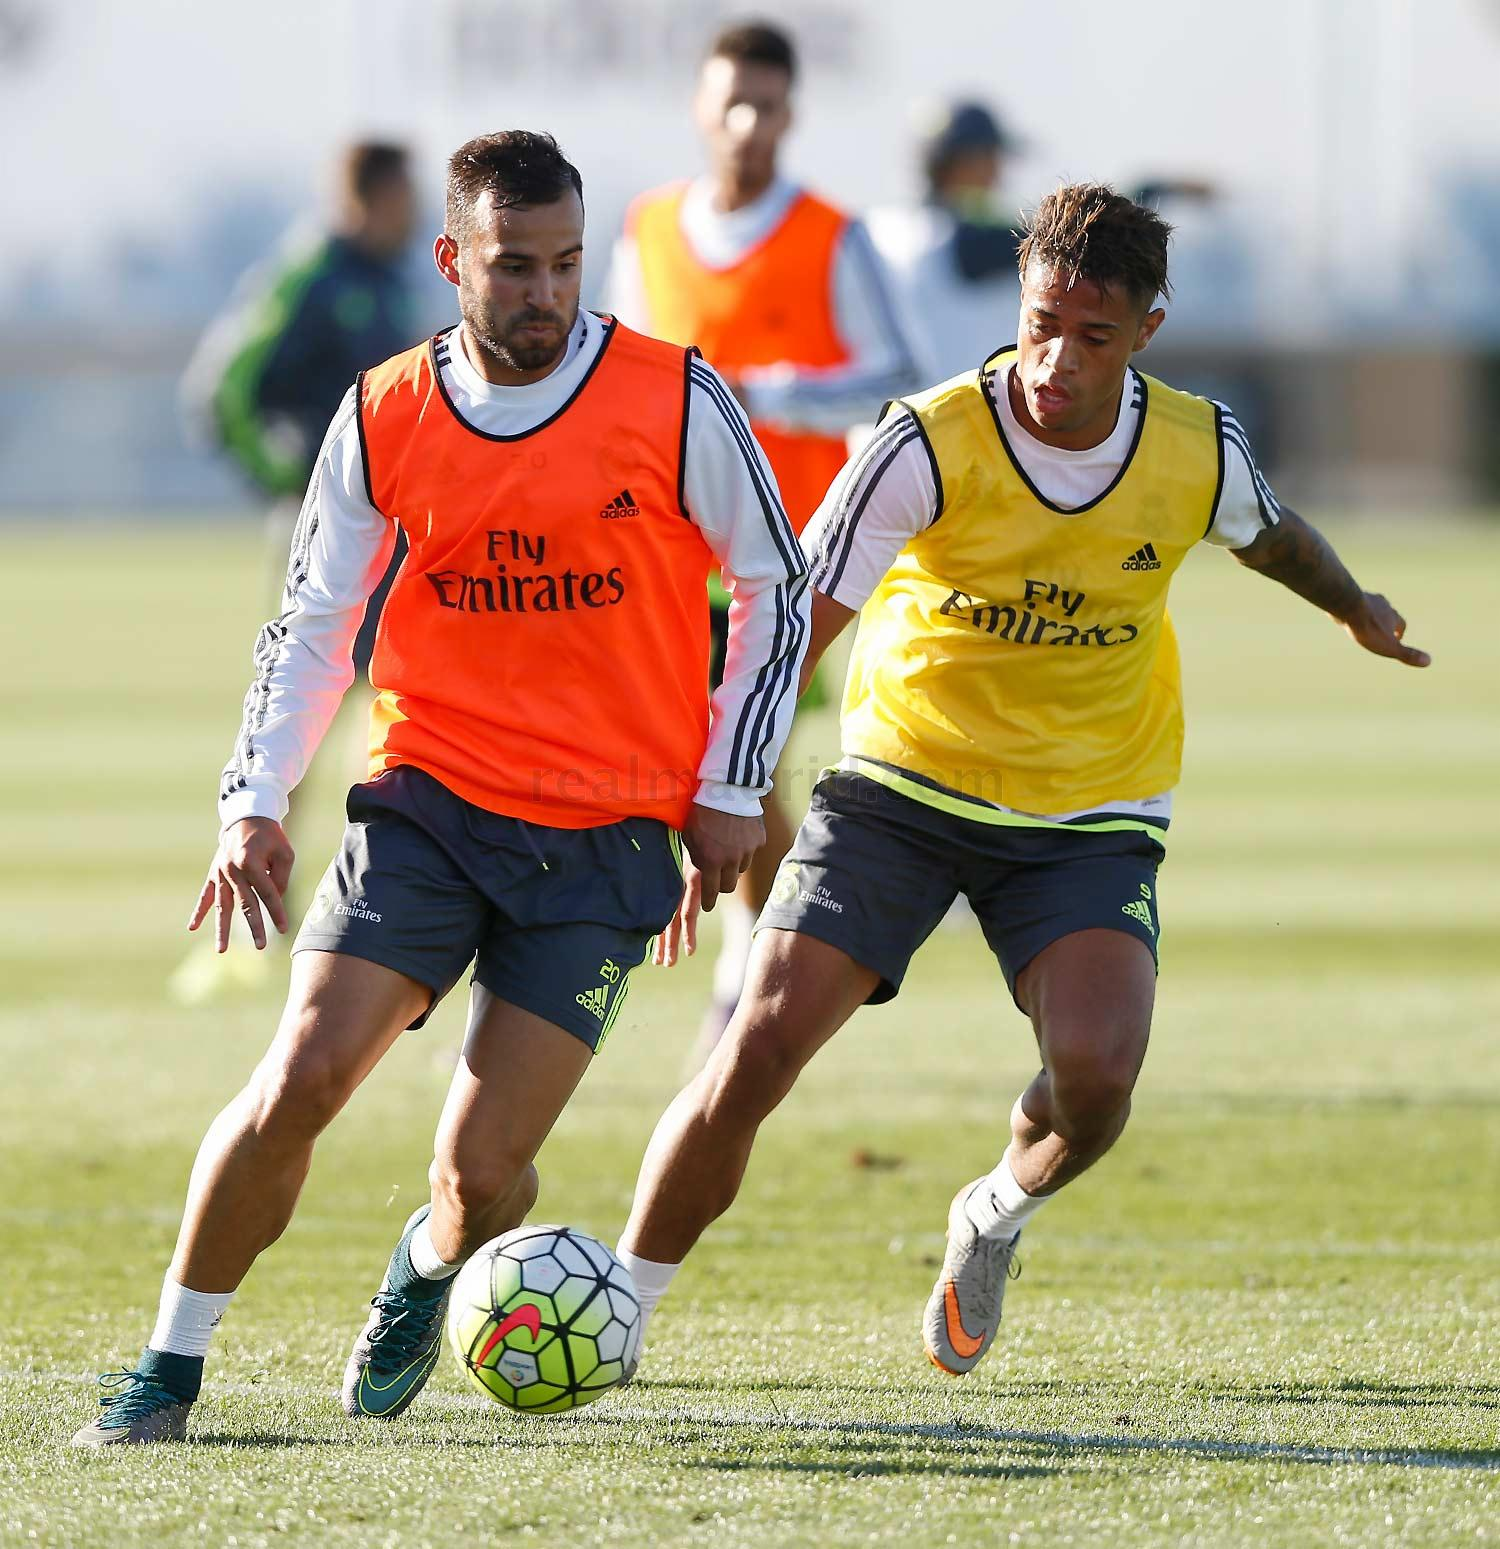 Real Madrid - Entrenamiento del Real Madrid - 13-10-2015